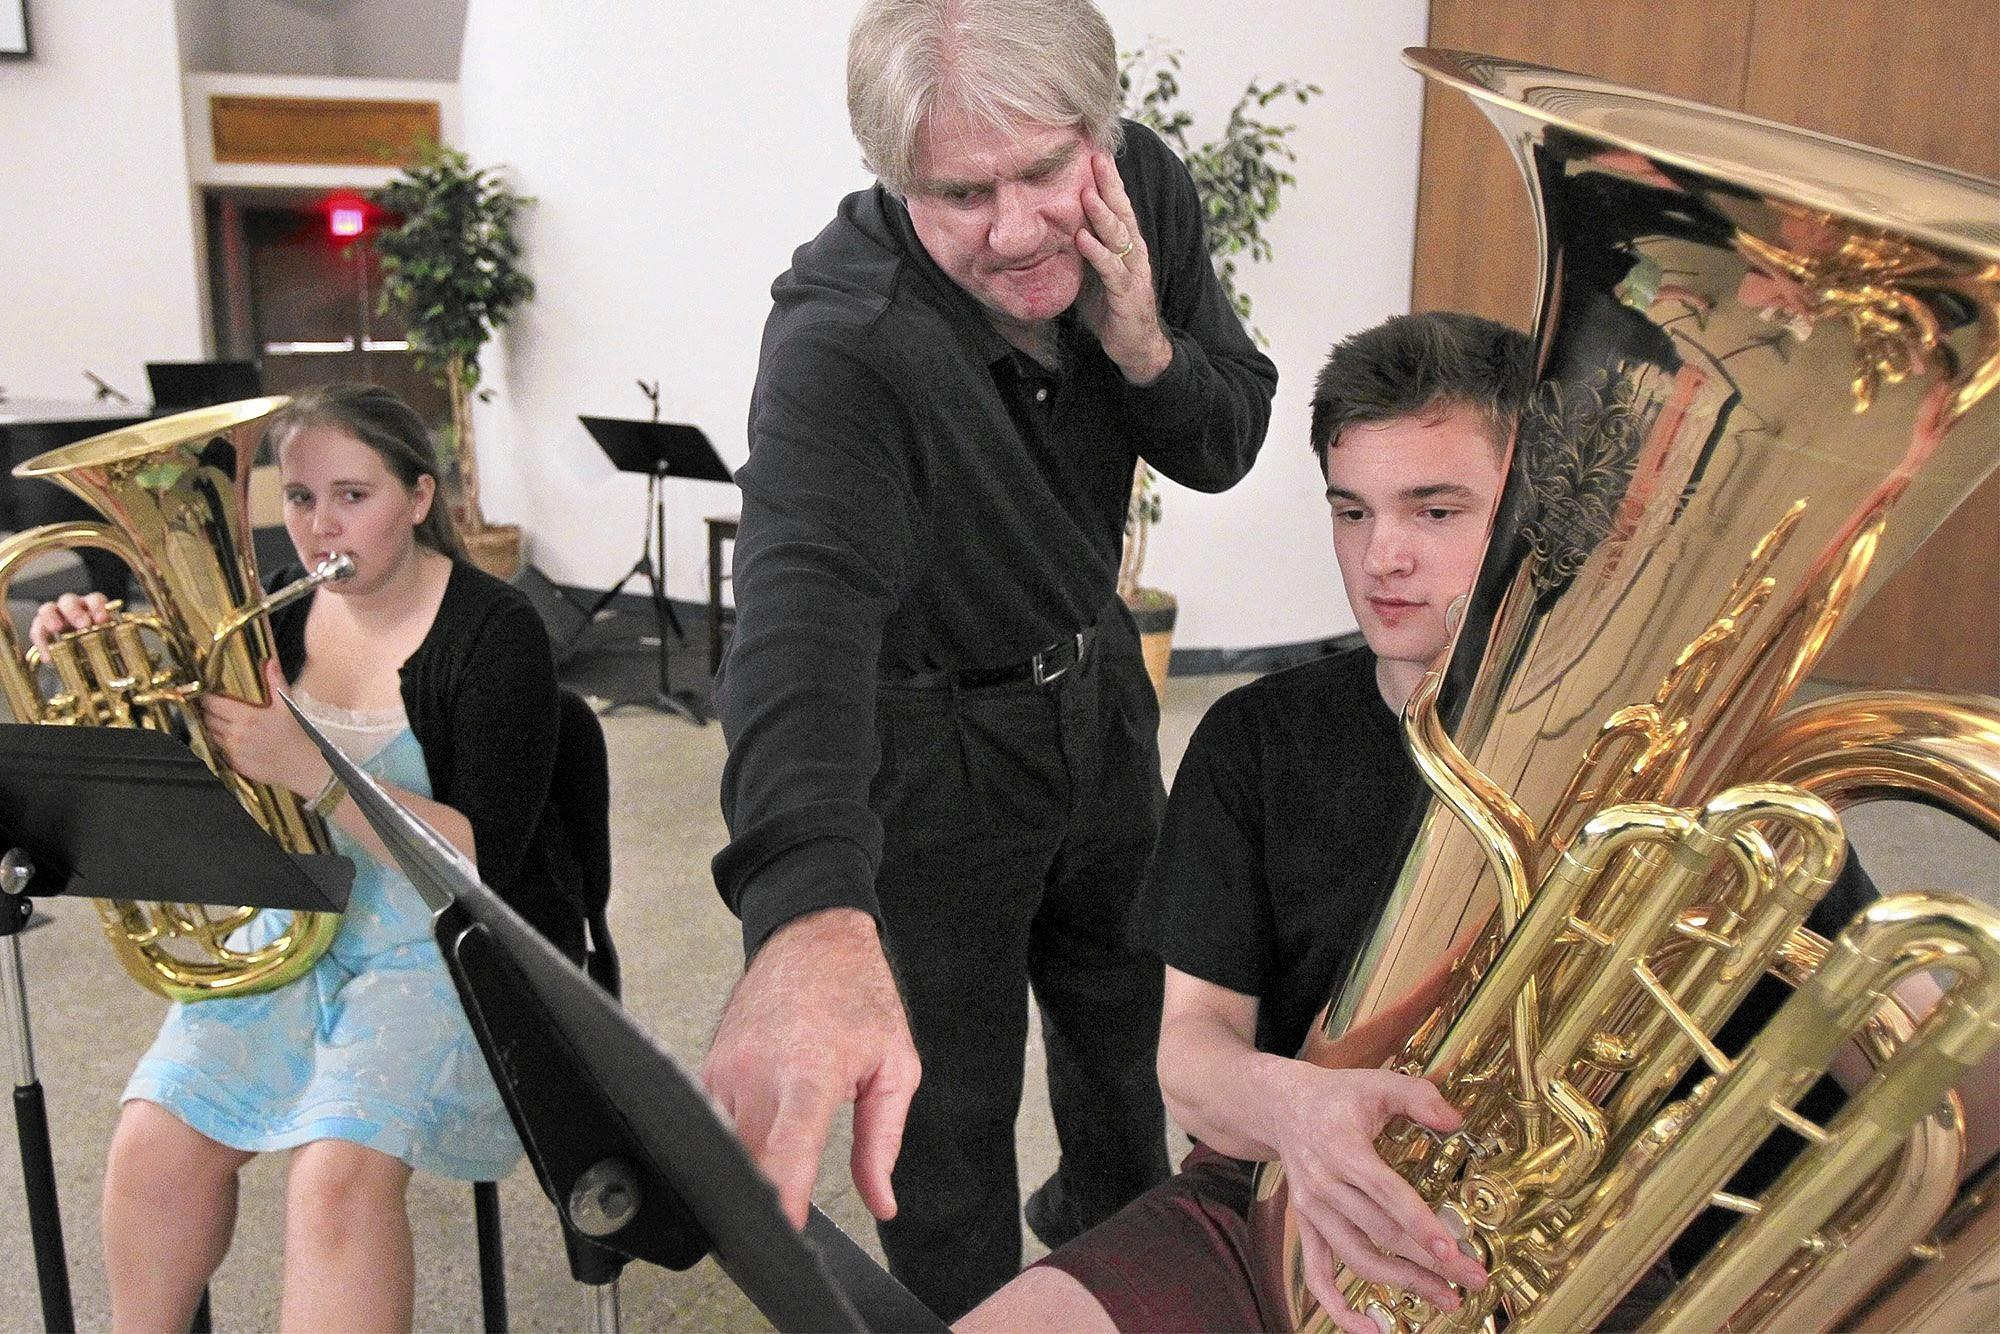 Independent tuba instructor John Van Houten, center, goes over music notes with Concordia Wind Orchestra members Bernard Hoffrogge, 18, and Abby Schneider, 19, during a private lesson at Concordia University in Irvine on Wednesday evening.